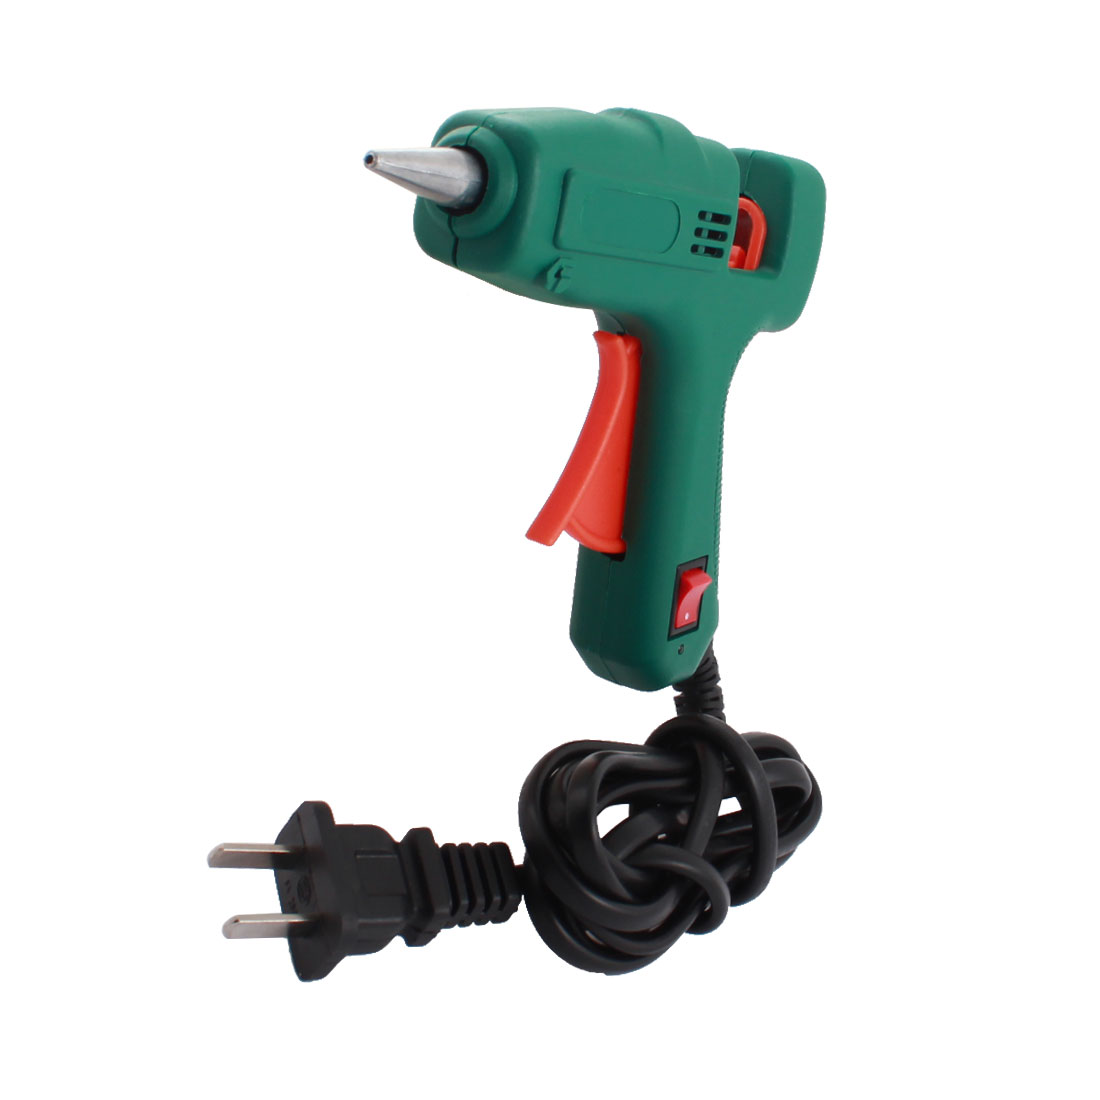 AC 100-240V US Plug 25W Electric Hot Melt Glue Gun for 7mm Glue Stick